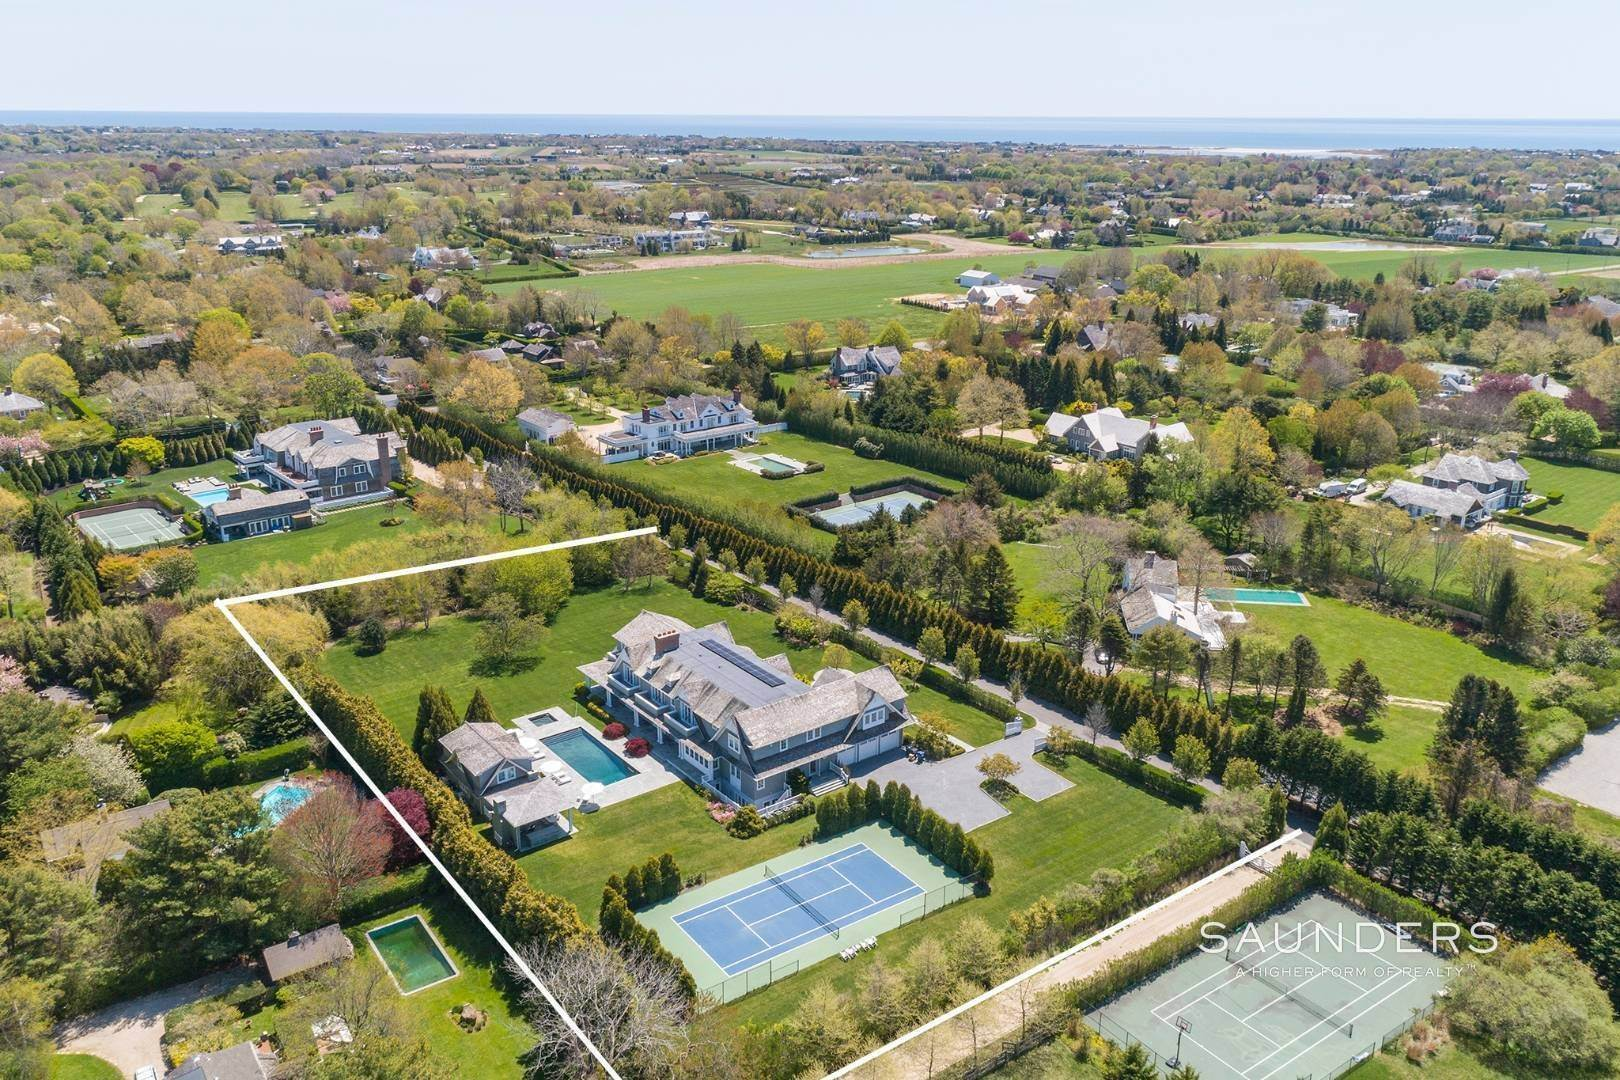 Single Family Homes at Bridgehampton South Estate 104 Halsey Lane, Bridgehampton, Southampton Town, NY 11932